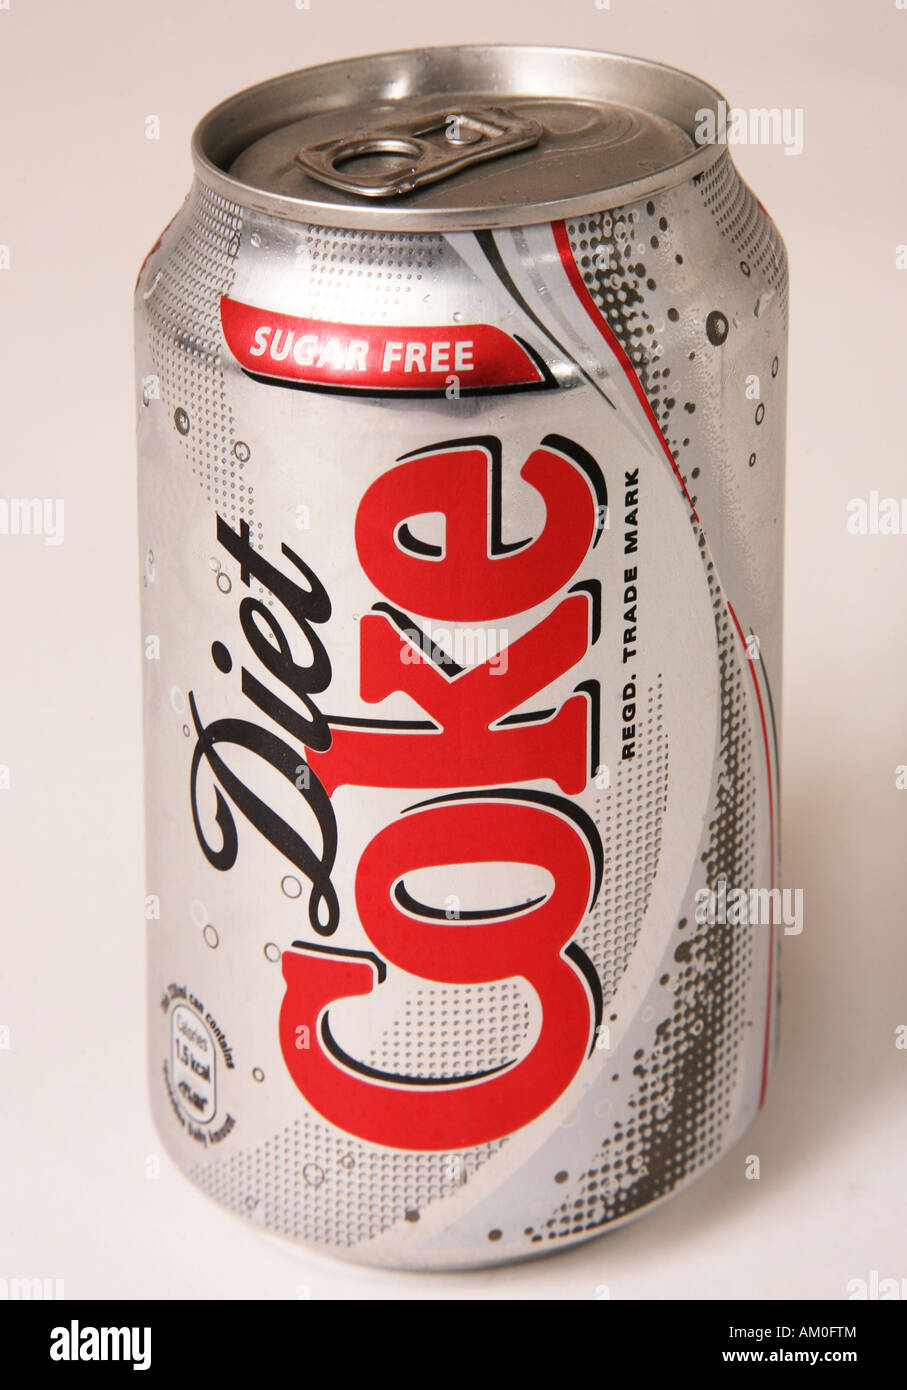 Image result for images for diet coke